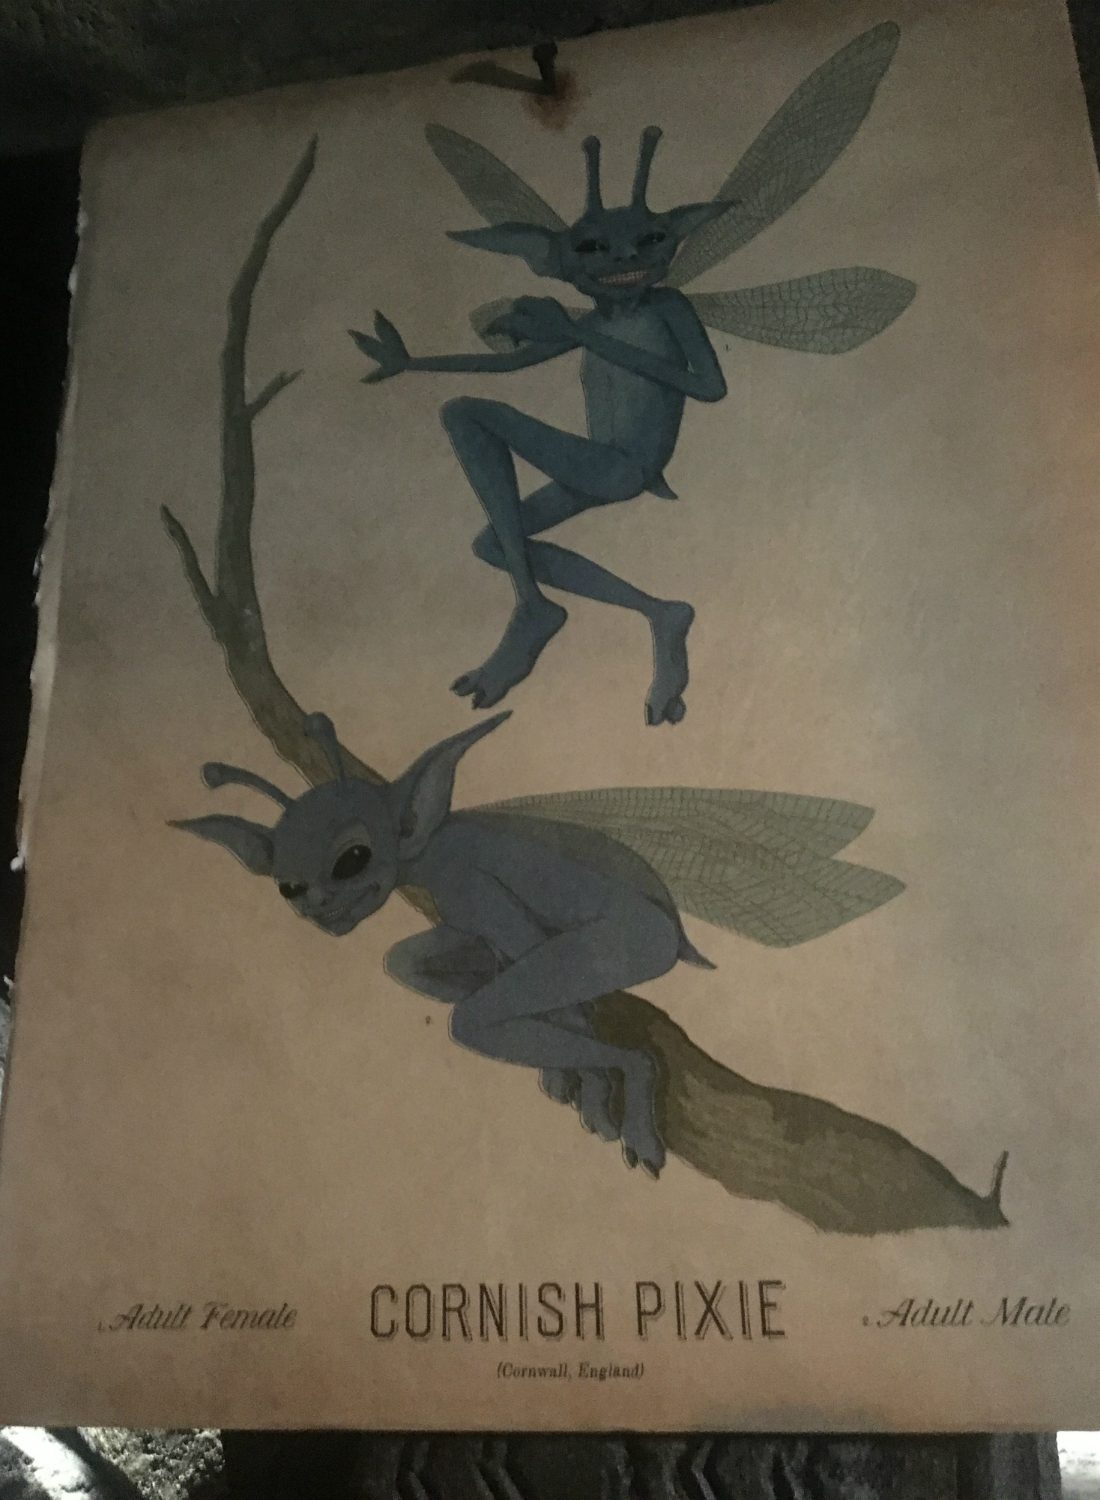 This illustration features an adult male and female Cornish pixie.